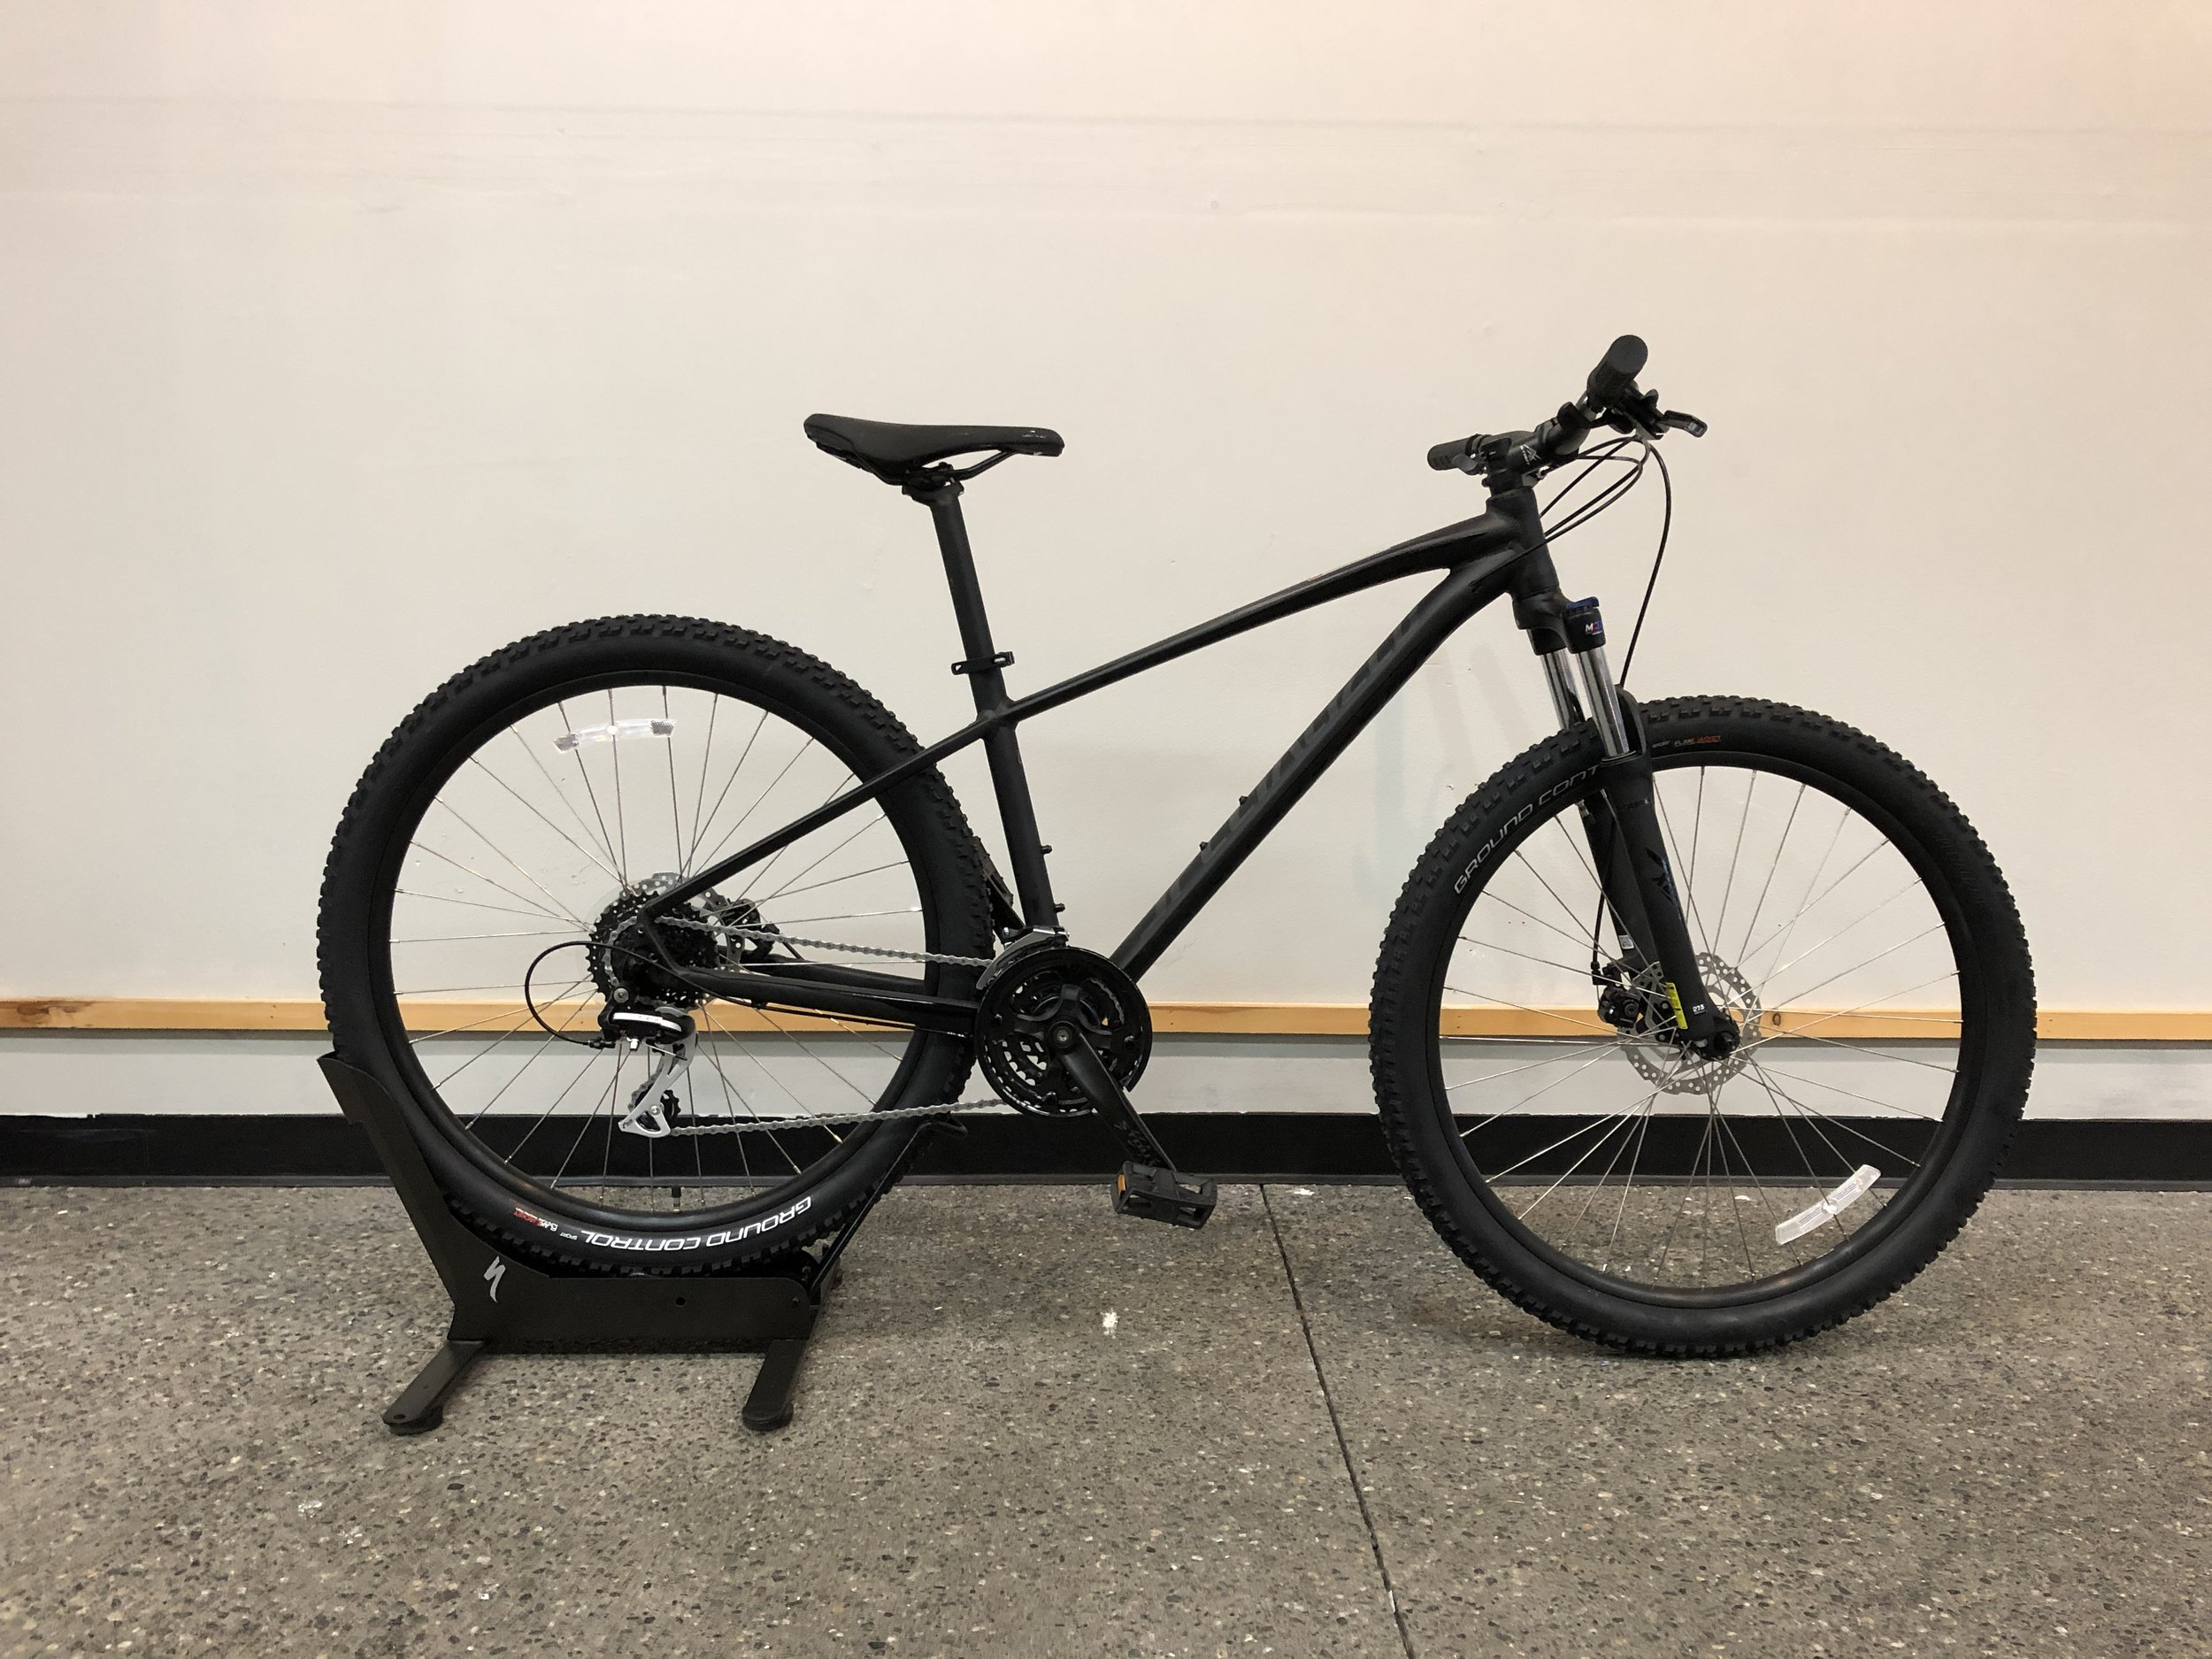 2019 Specialized Pitch Sport - $625Sizes Available : Medium, LargeWe are happy to order you any size or model you need.